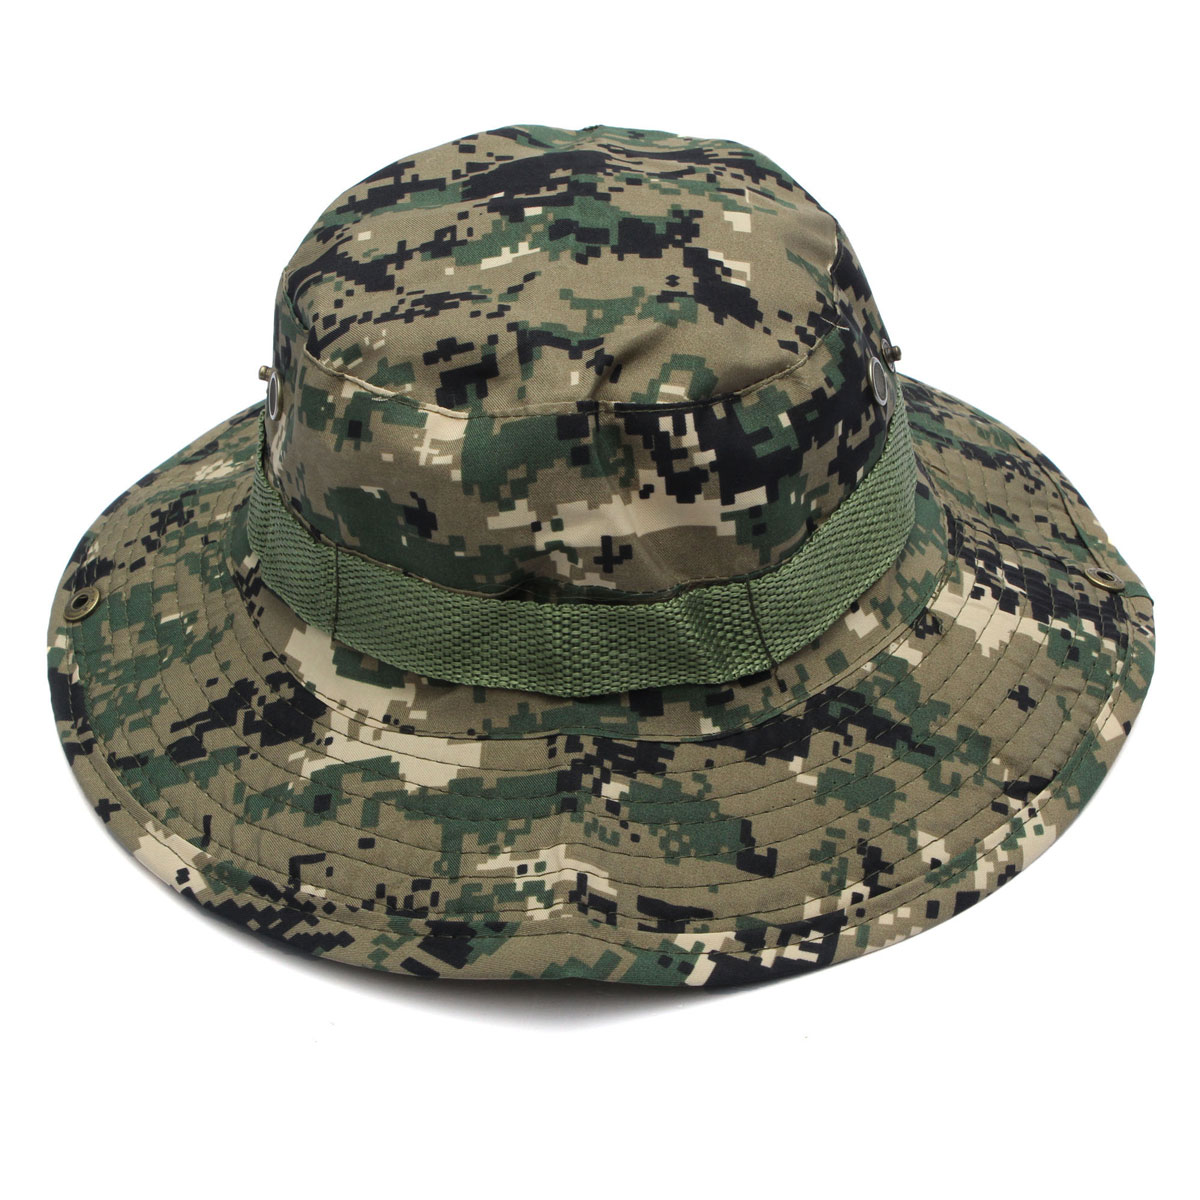 Military Boonie Hat Camo Cover Wide Brim Camouflage Camping Hunting Cap